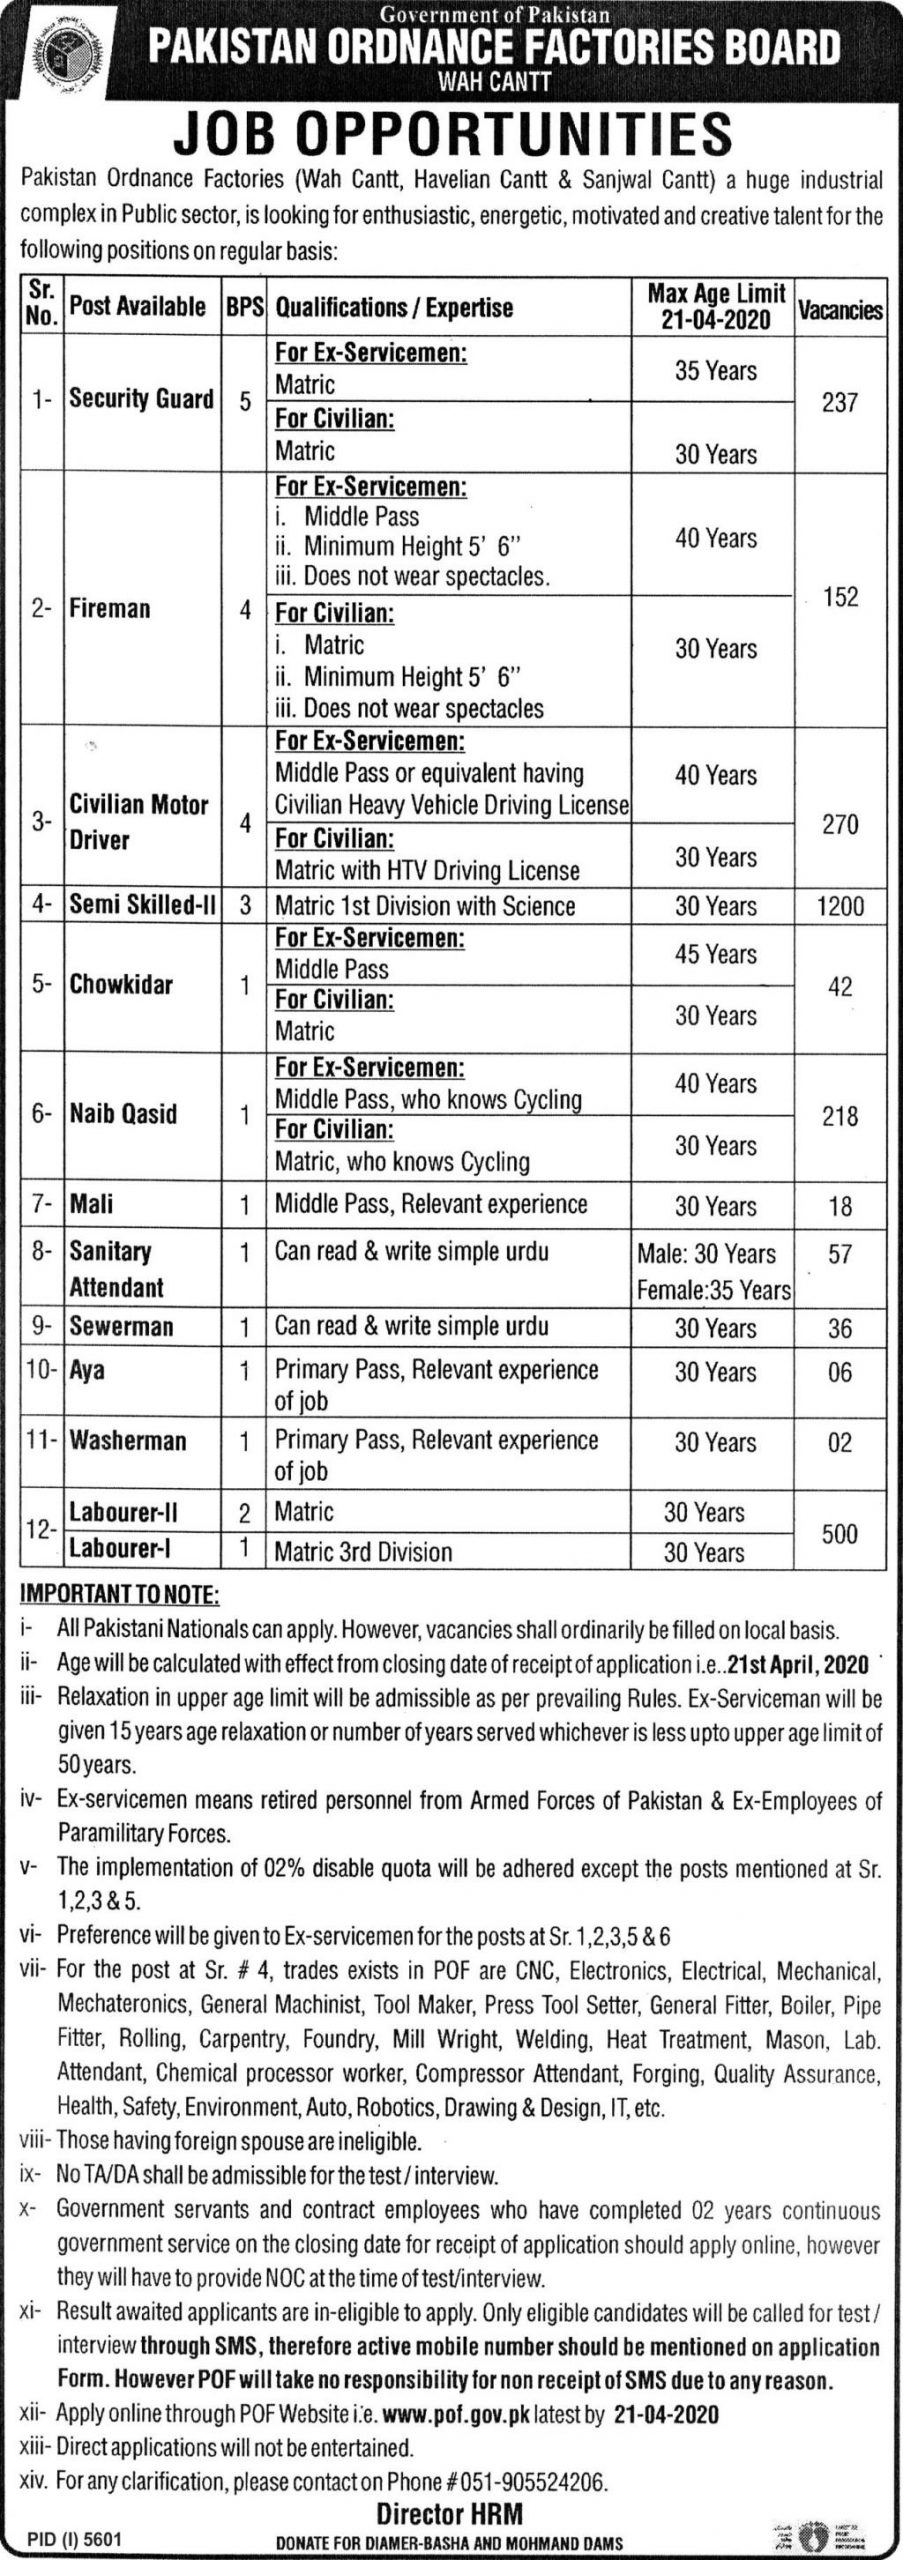 Pakistan Ordinance Factory Jobs